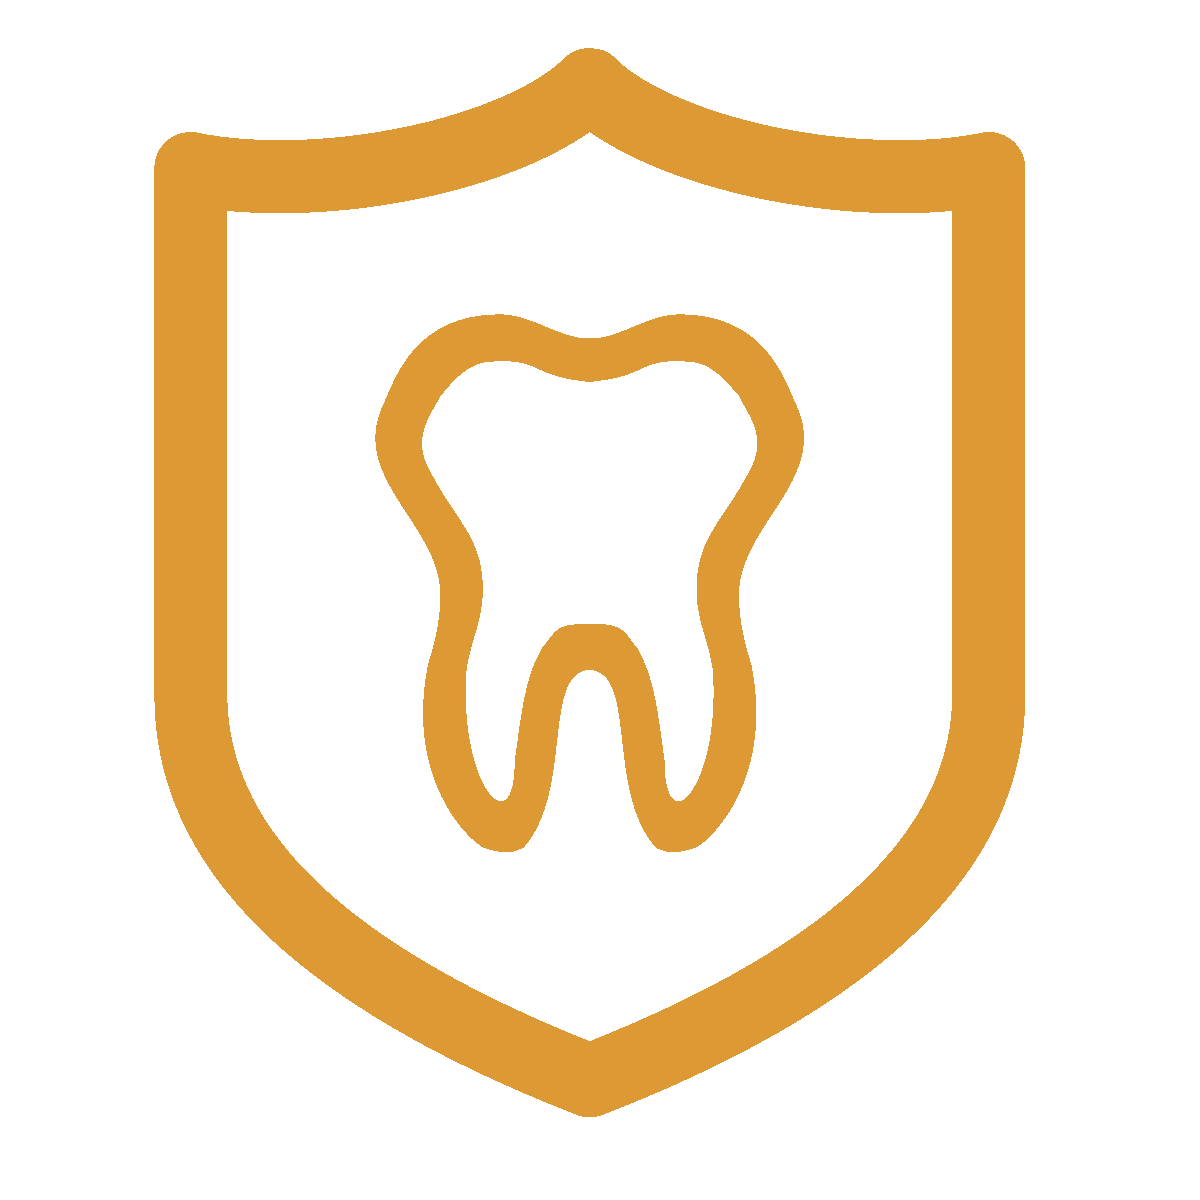 http://www.swanseadentistry.com/wp-content/uploads/2016/11/your-dental-care-gold.png